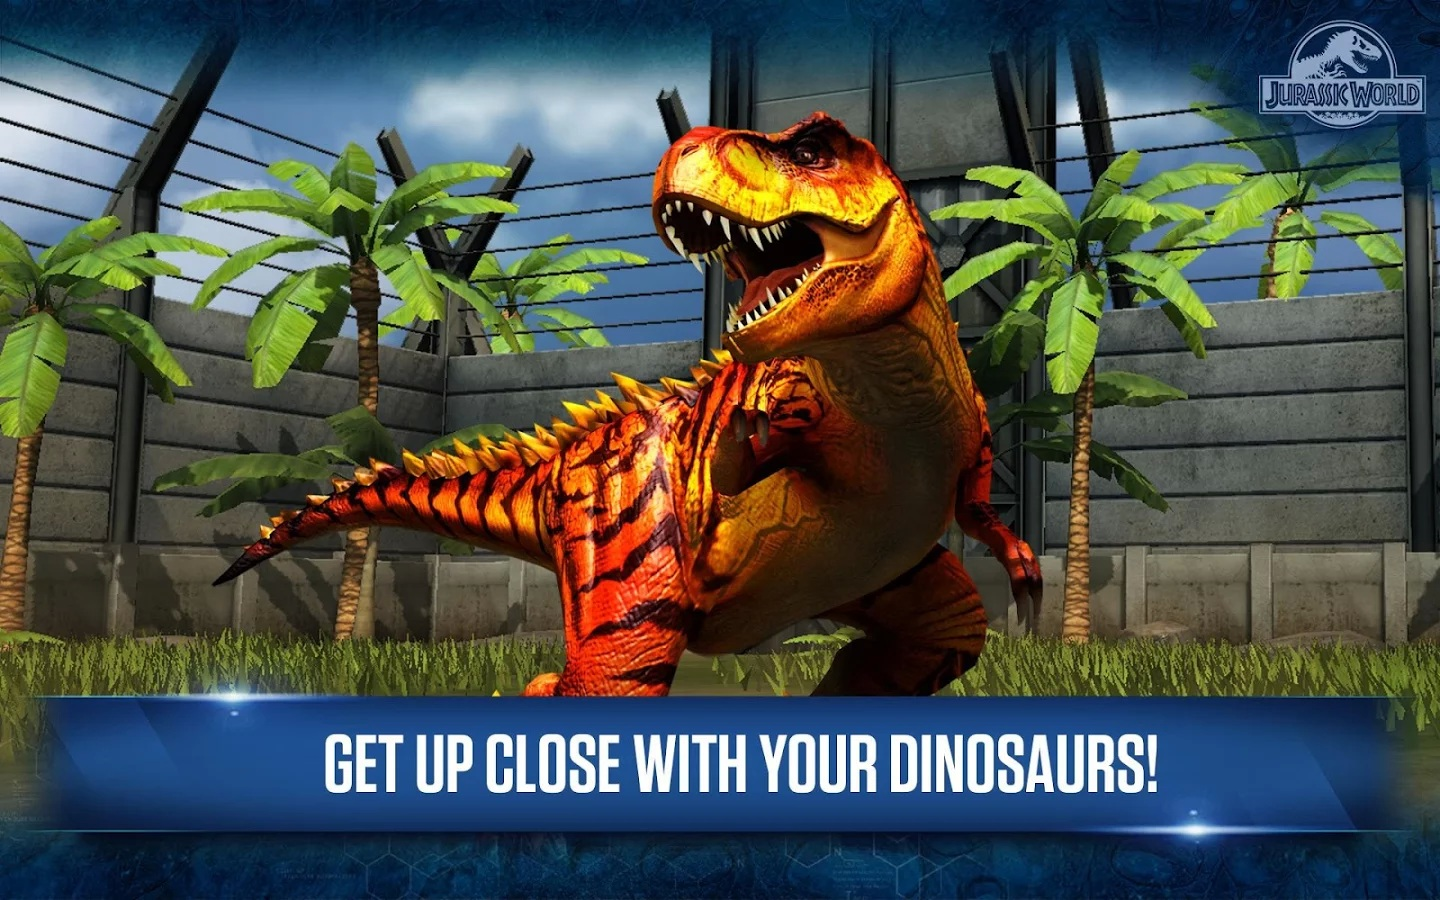 jwgame05 Jurassic World: The Game Available on IOS/Android